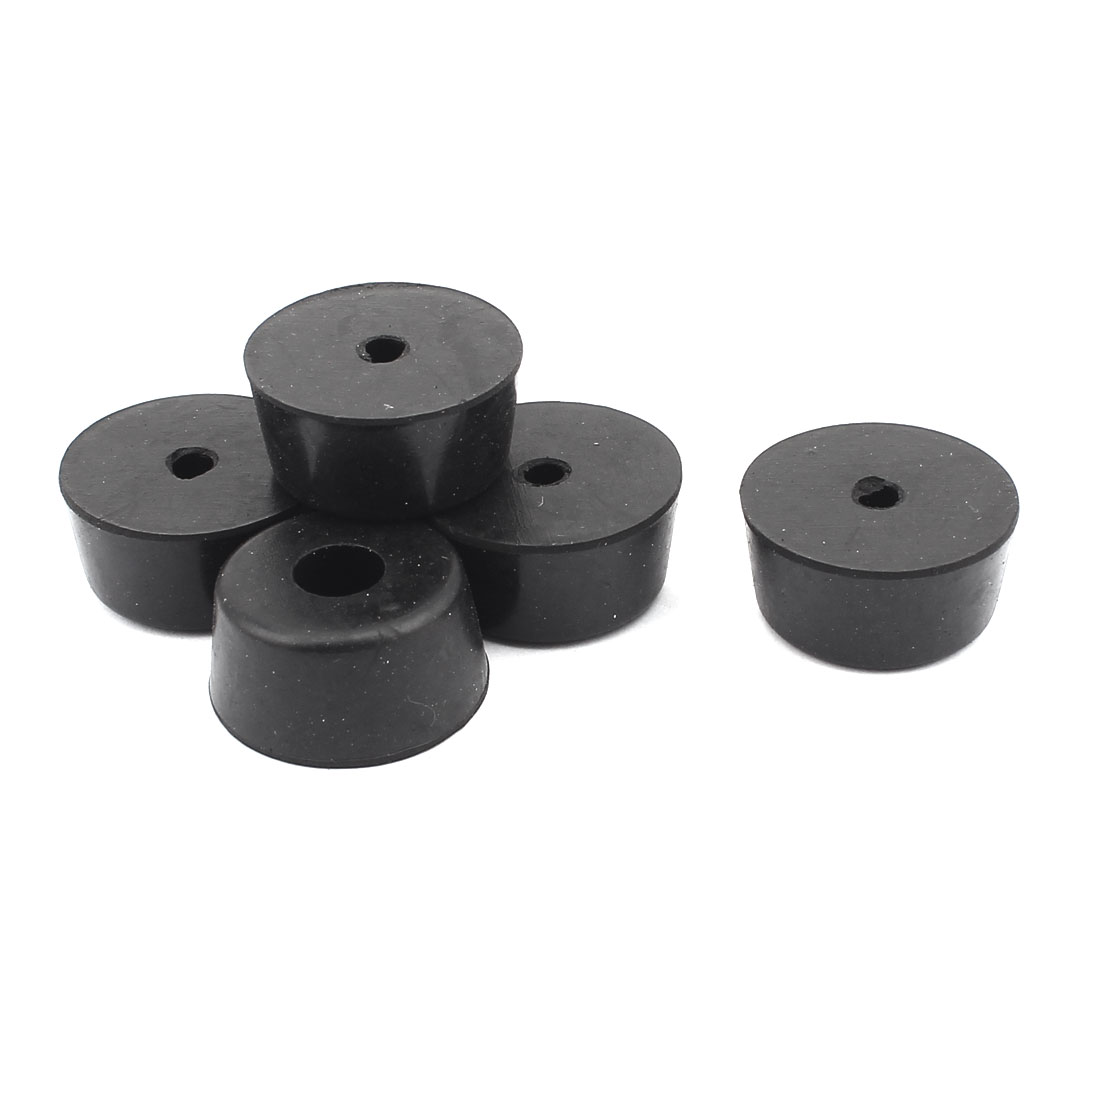 Rubber Cover Speaker Furniture Table Chair Feet Pad 28mm x 23mm x 14mm 6PCS